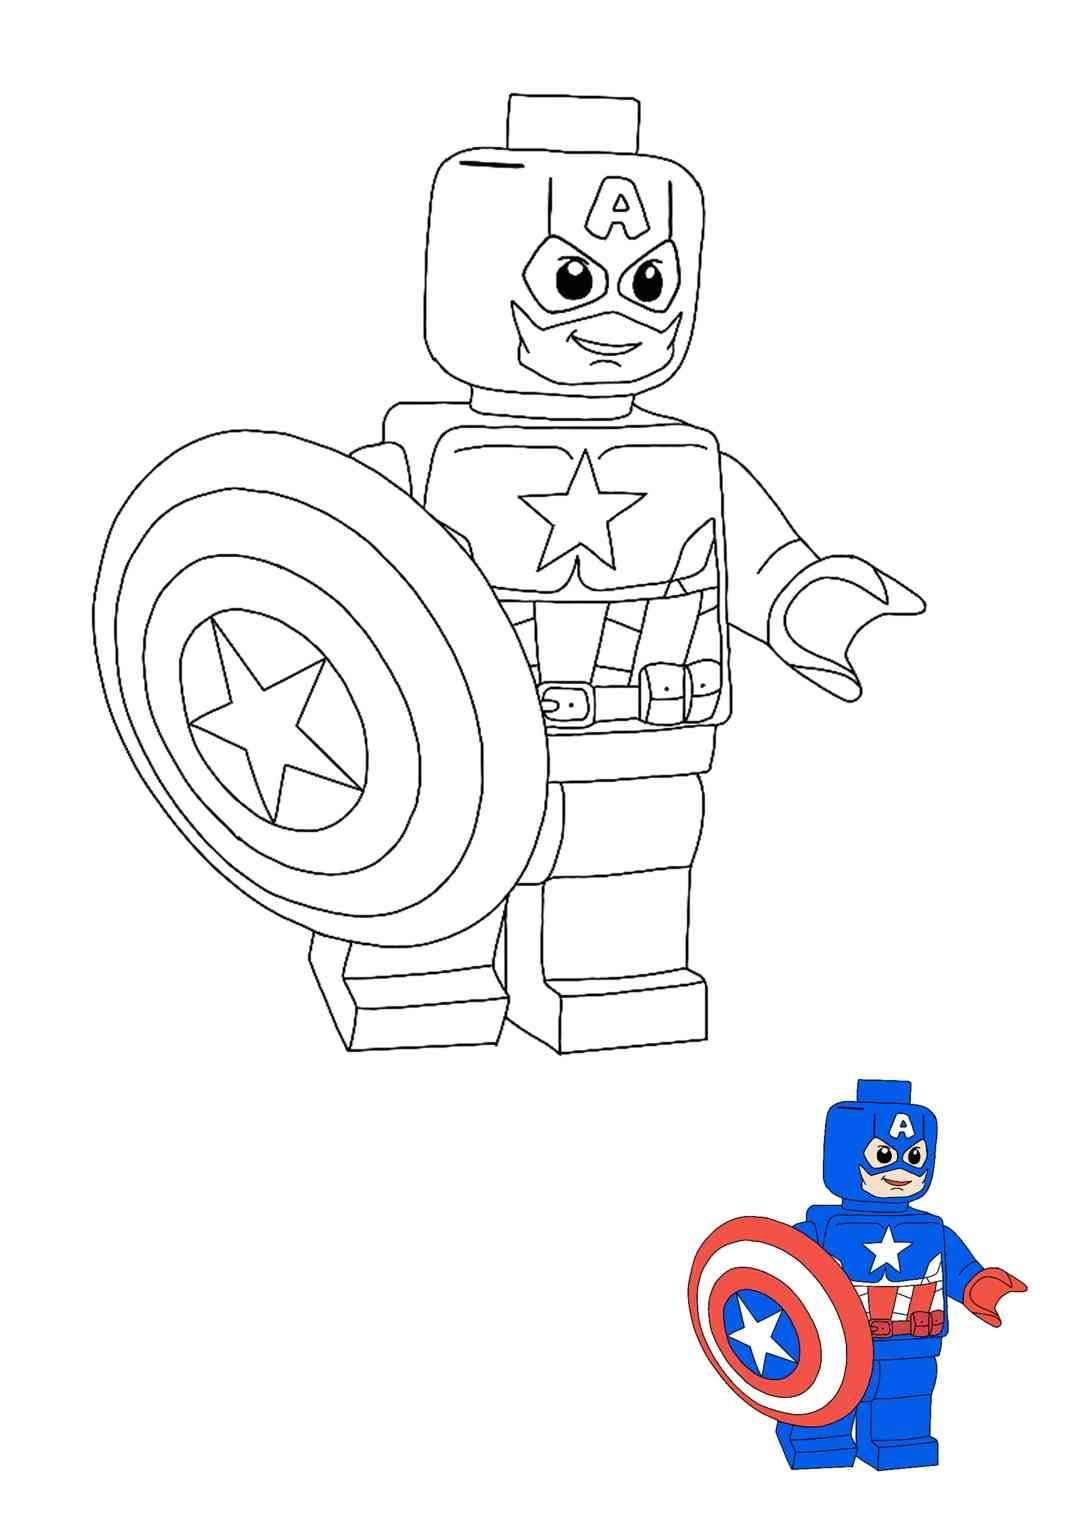 Lego Captain America Coloring Pages In 2020 Captain America Coloring Pages Free Printable Coloring Sheets Free Printable Coloring